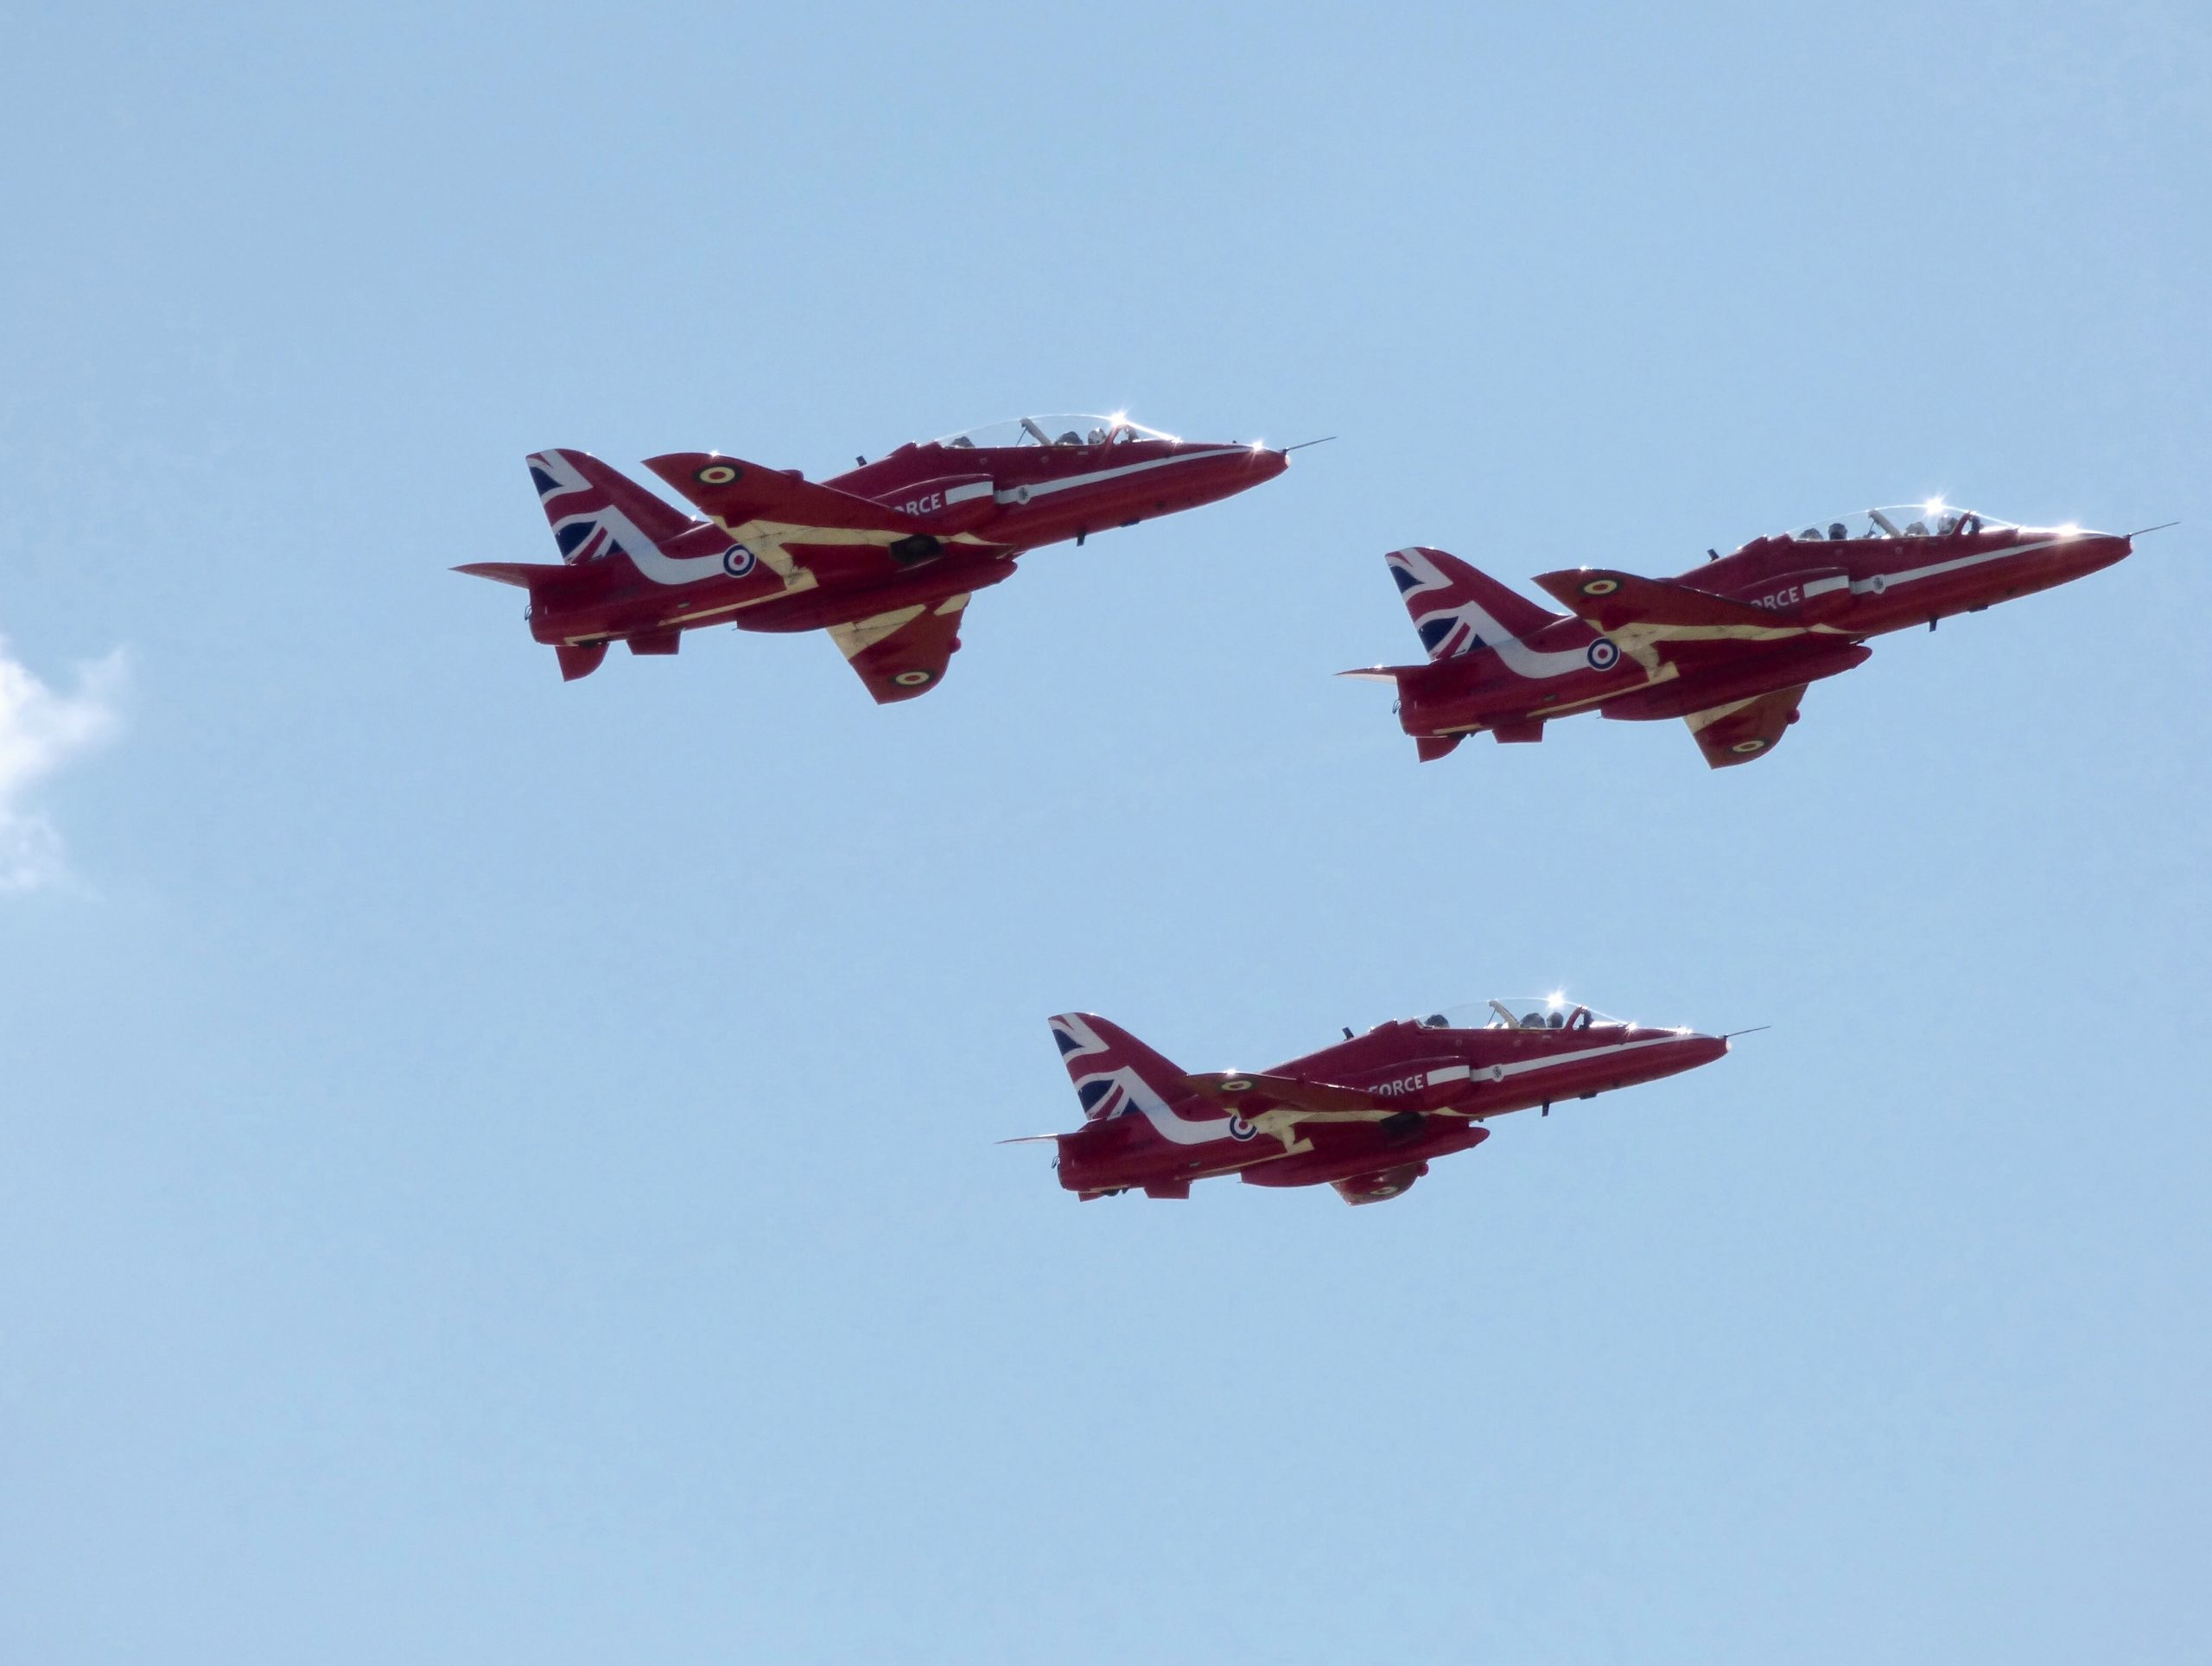 RAF Red Arrows flying in the sky